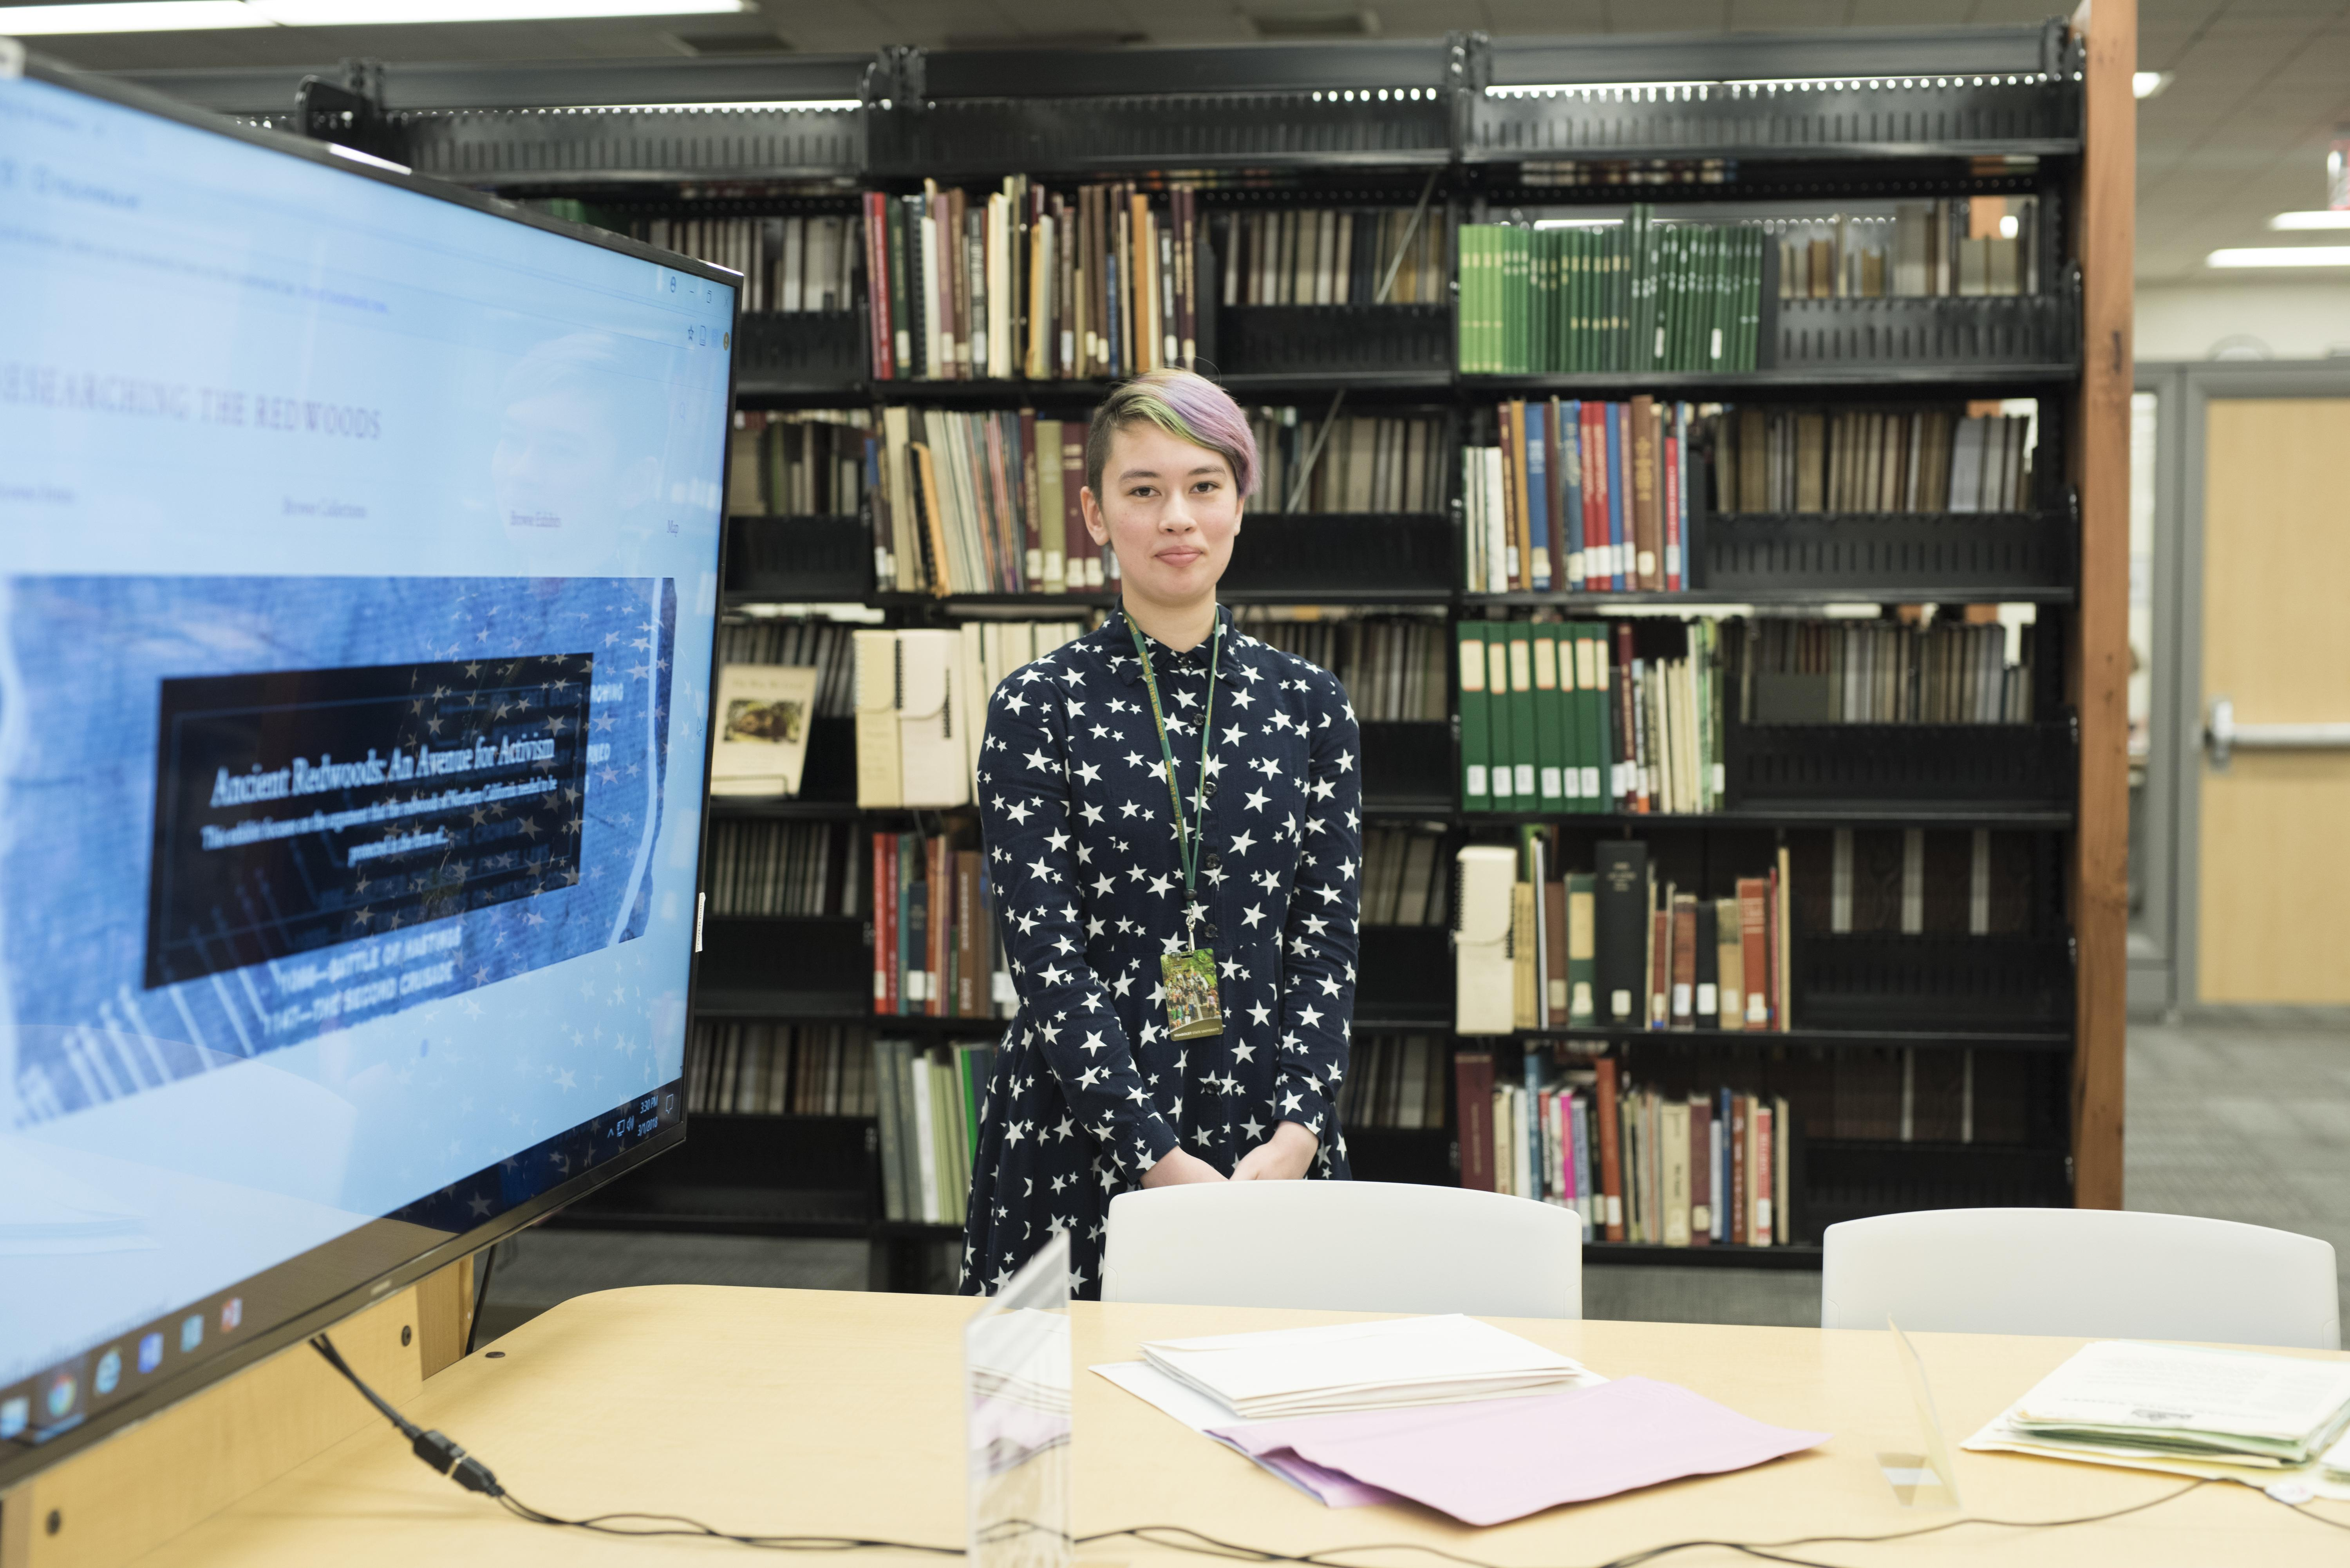 A Special Collections intern presents a project to a library open house